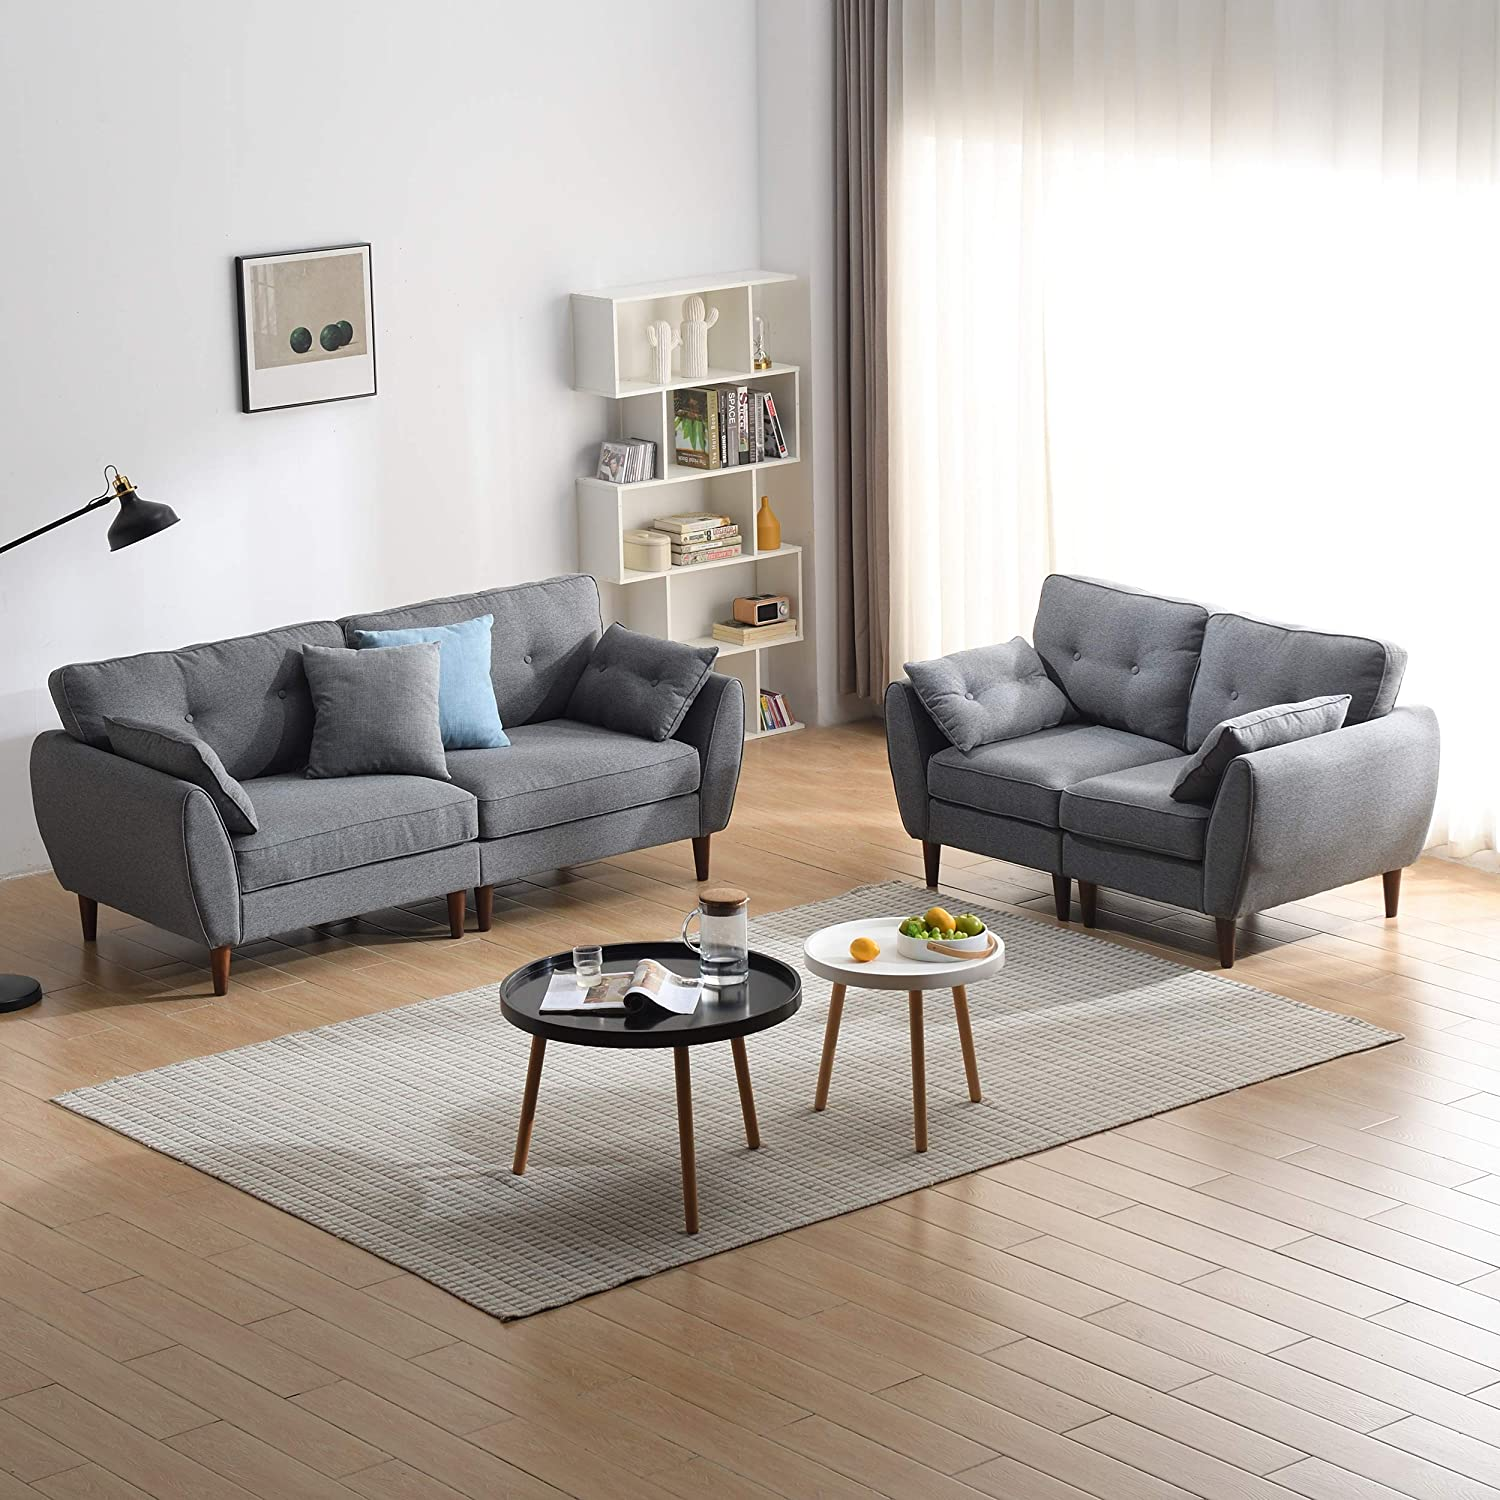 Brooks Fabric Sofa range in Stone Grey 4